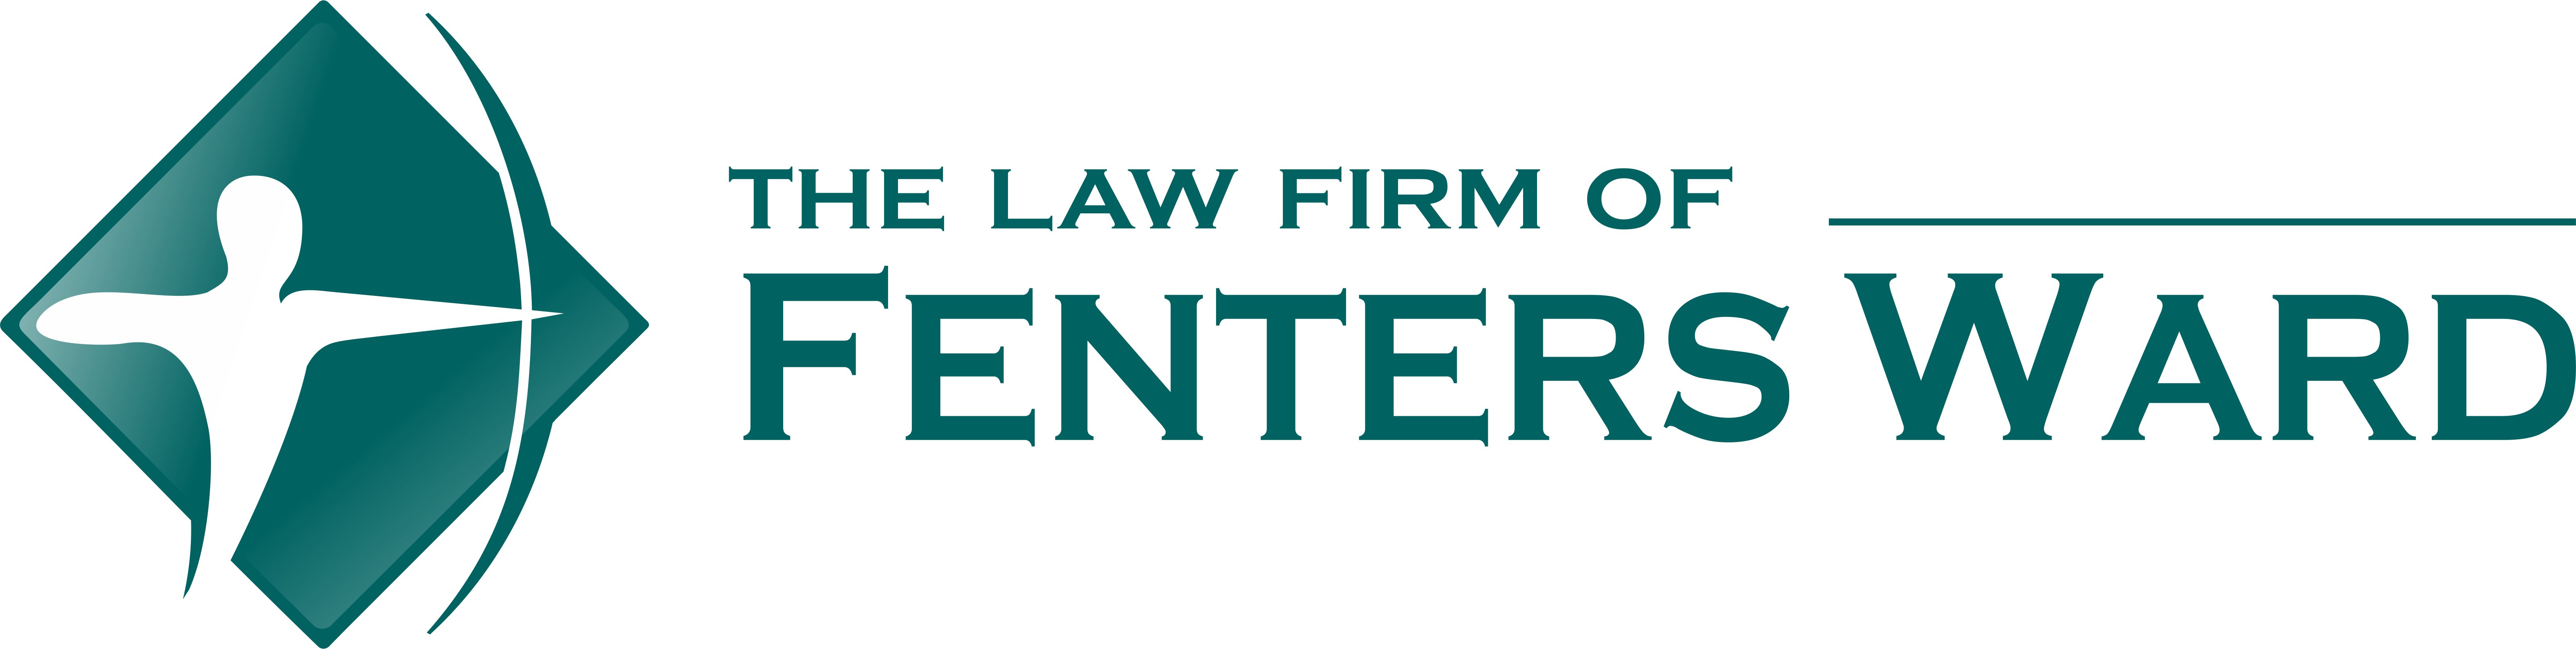 The Law Firm Of Fenters Ward Expands Its Practice Areas/Specialties To Include Debt Defense, Family Law, And All Types Of Personal Injury Claims